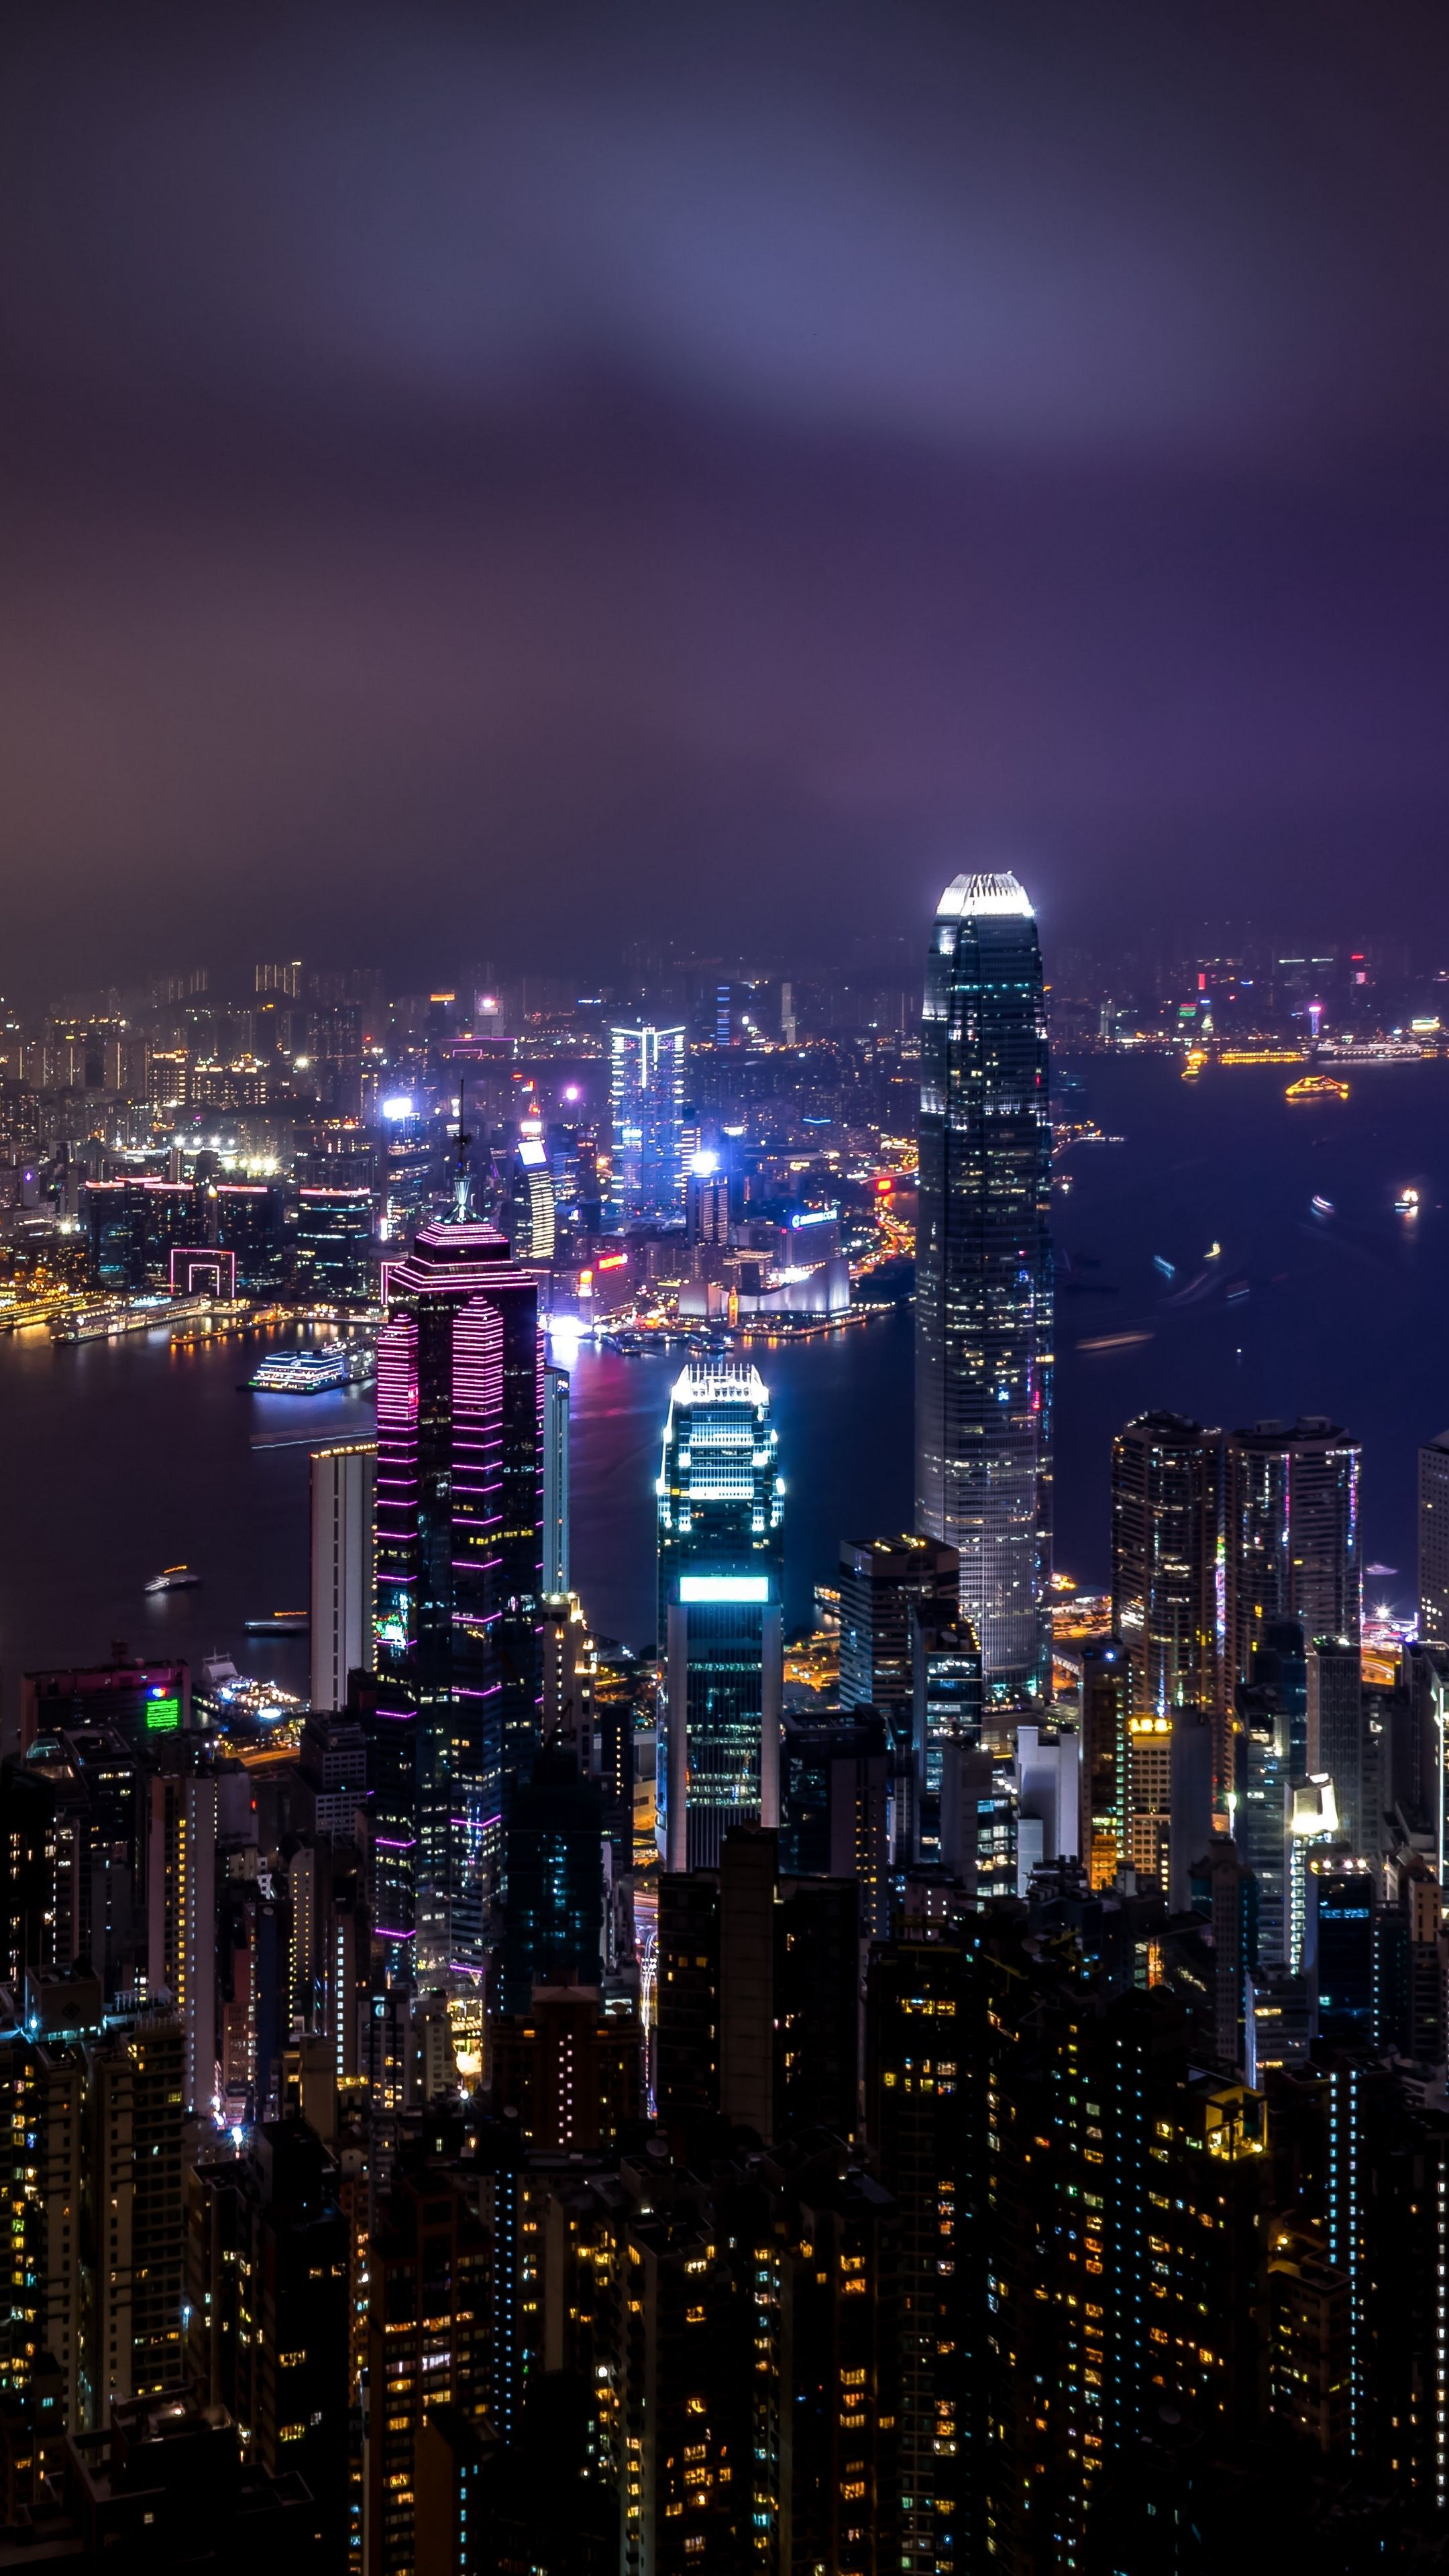 Hong Kong China 2160x3840 In 2020 City Lights At Night City Wallpaper City Lights Wallpaper